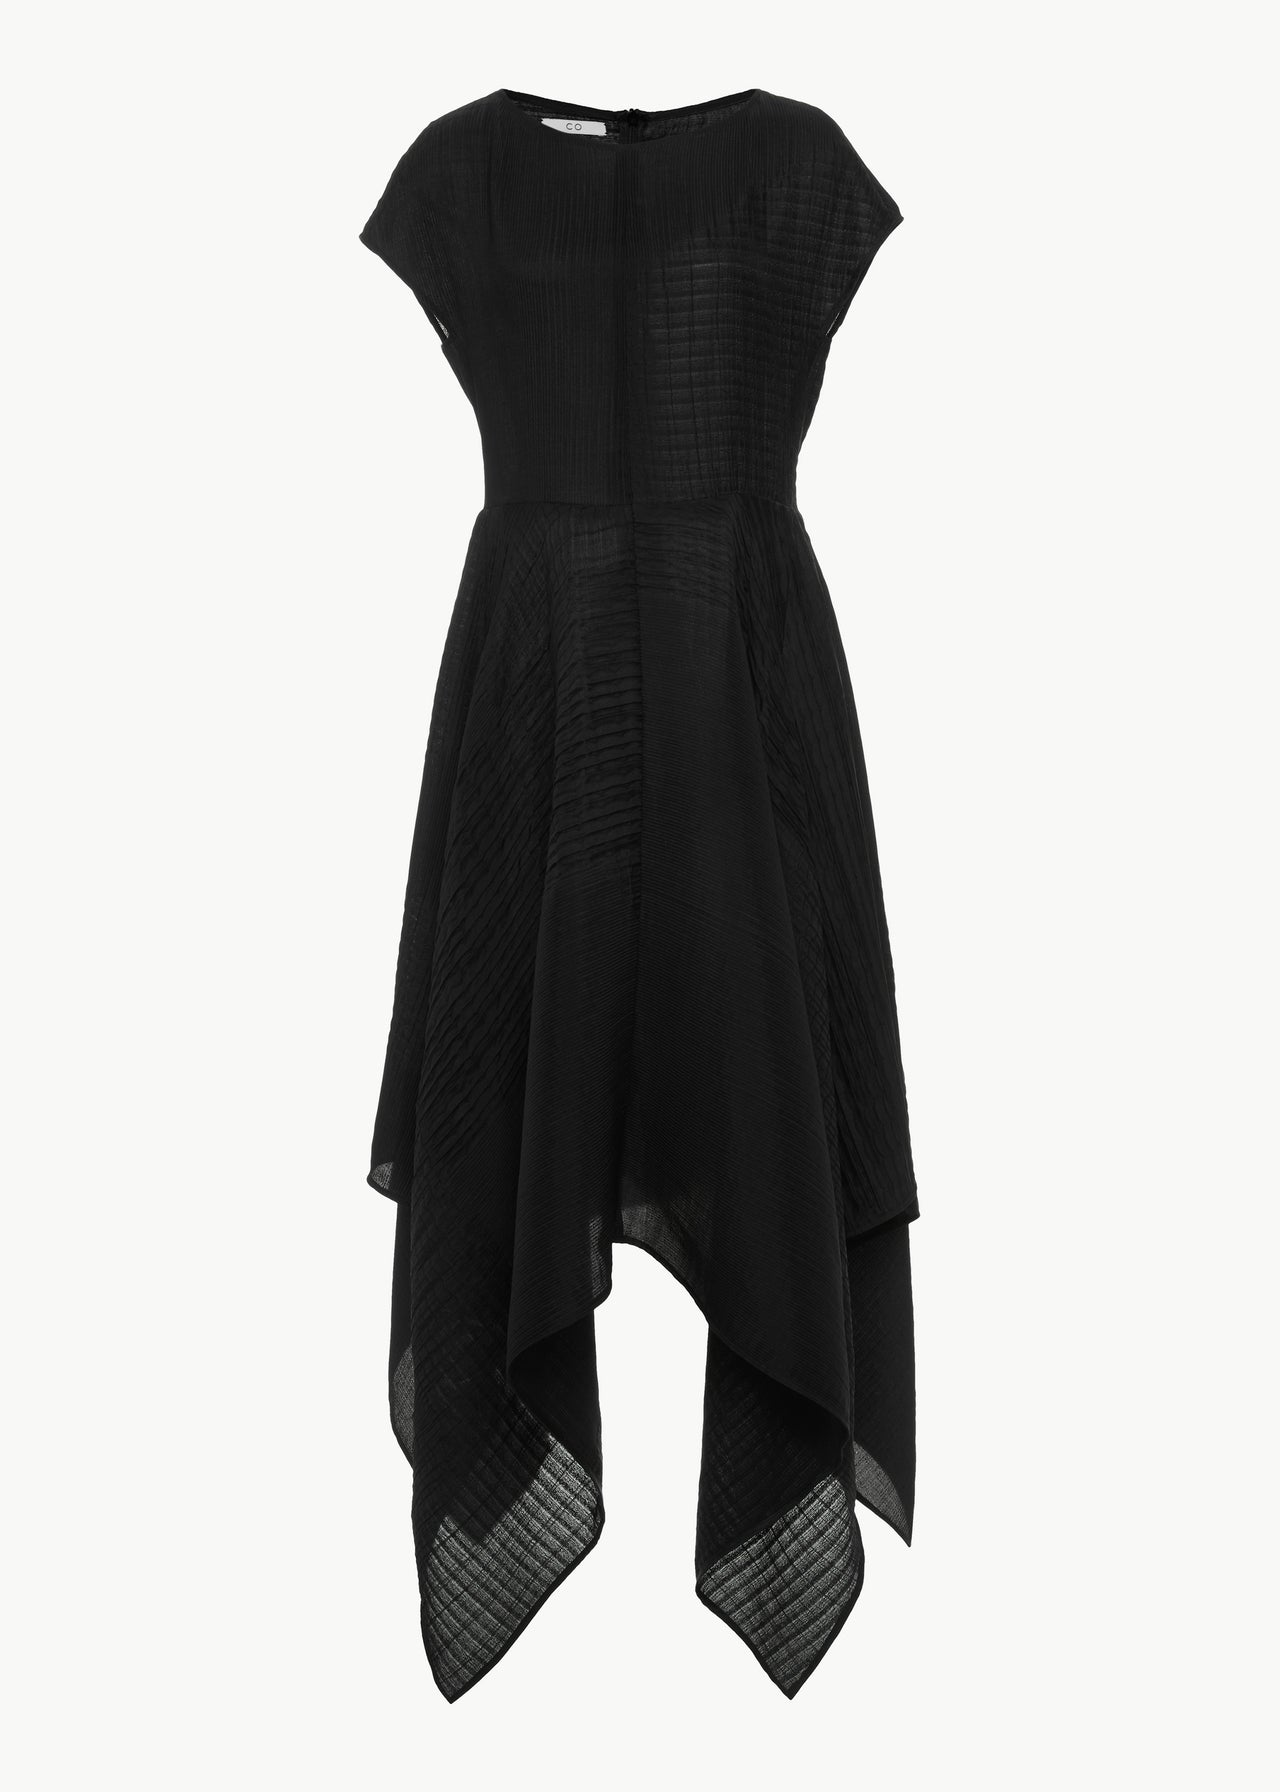 Handkerchief Hem Dress in Smocked Crepe - Black